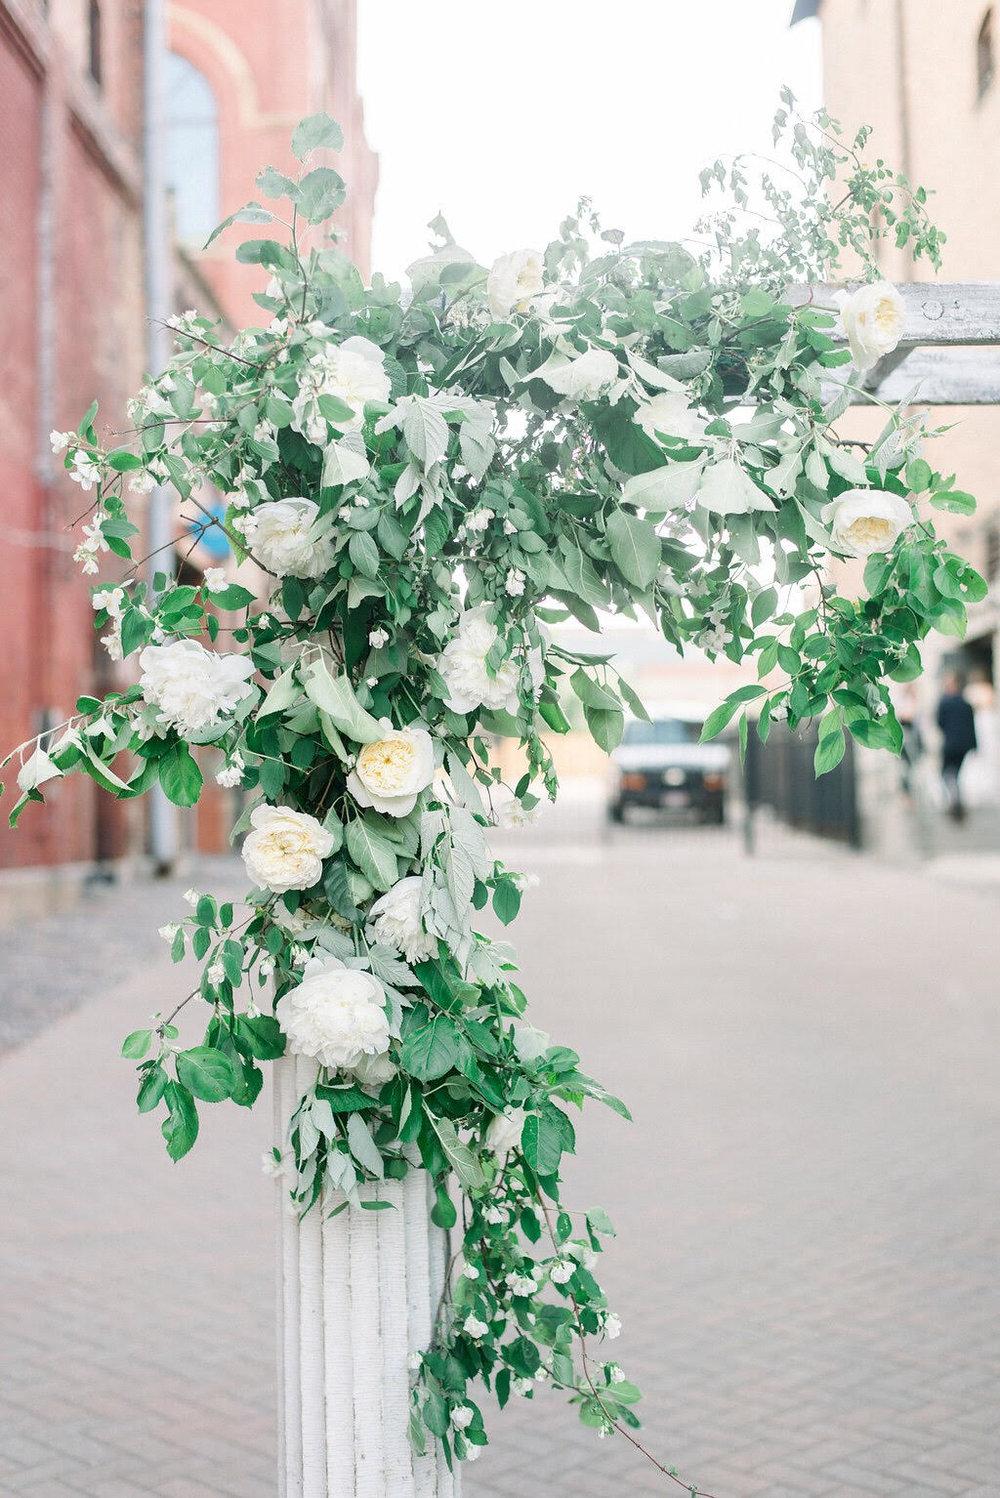 Mock orange, Apple, Russian Olive and thorny and unpleasant (but pretty) multiflora rose made for a textured, beautiful display at this June wedding. Photo by Henry Photography.